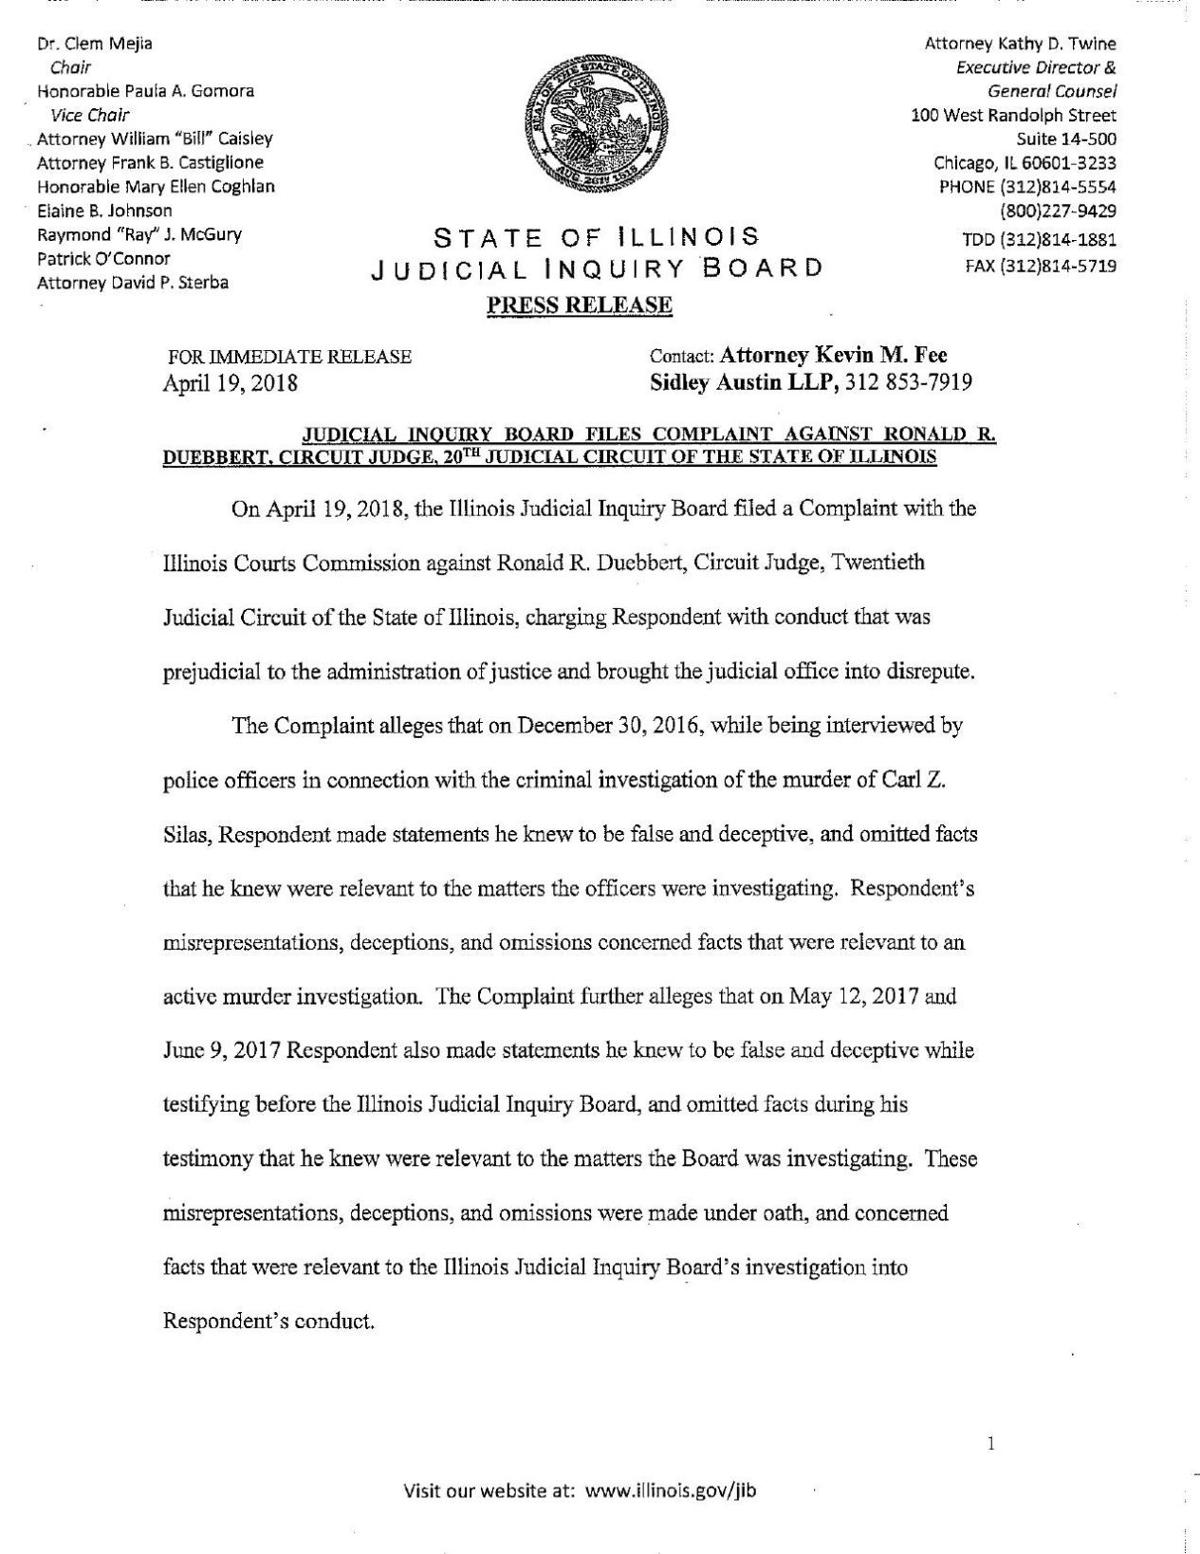 Complaint against Ronald Duebbert